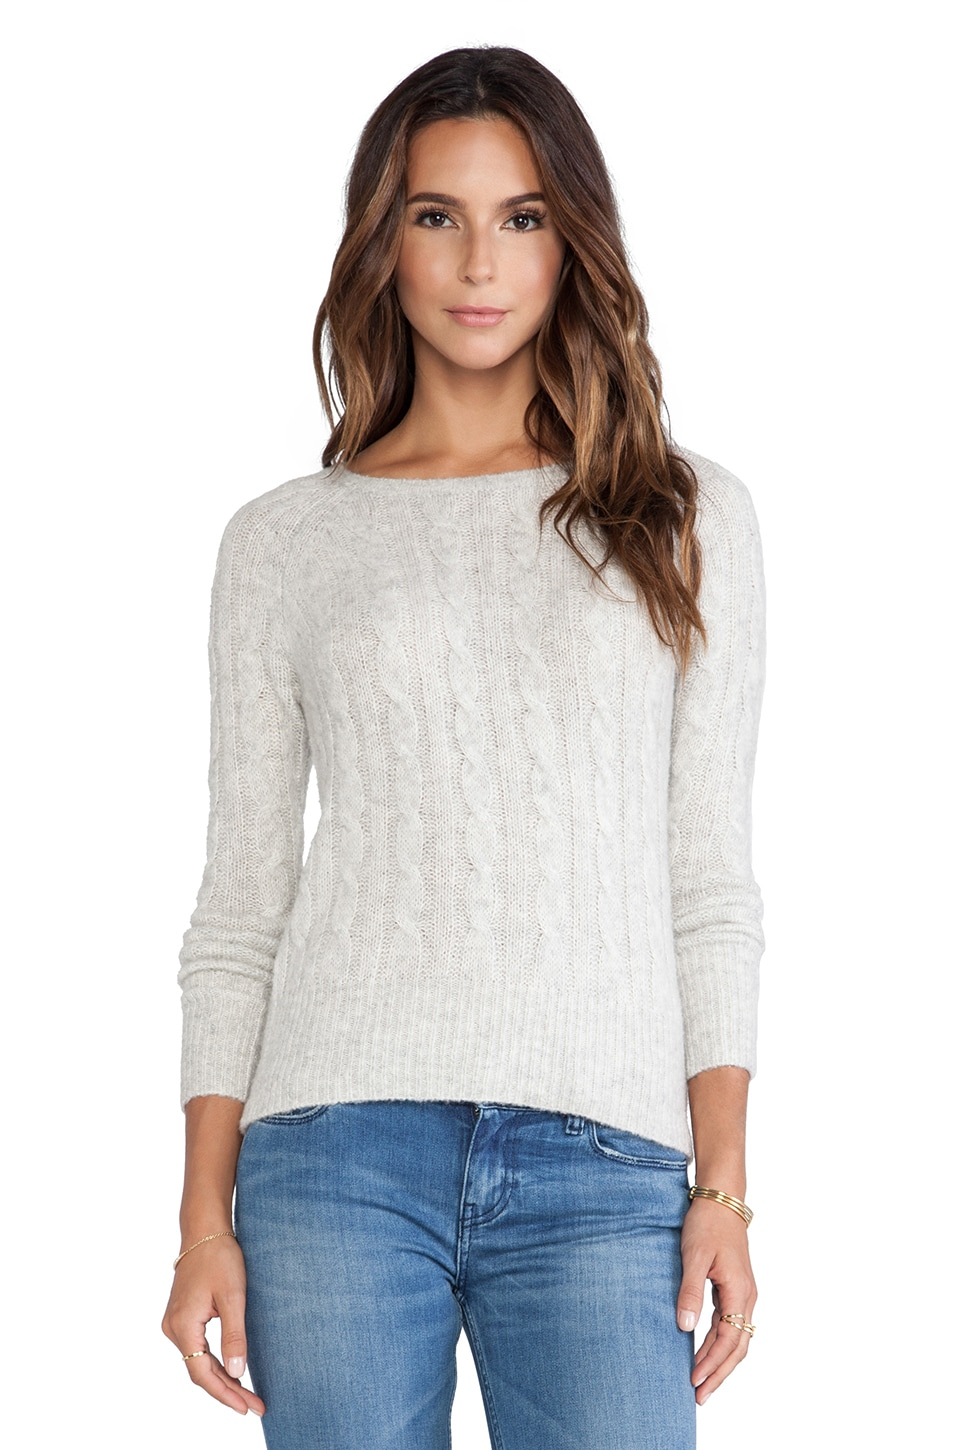 Autumn Cashmere Cable Crew Sweater in Mist